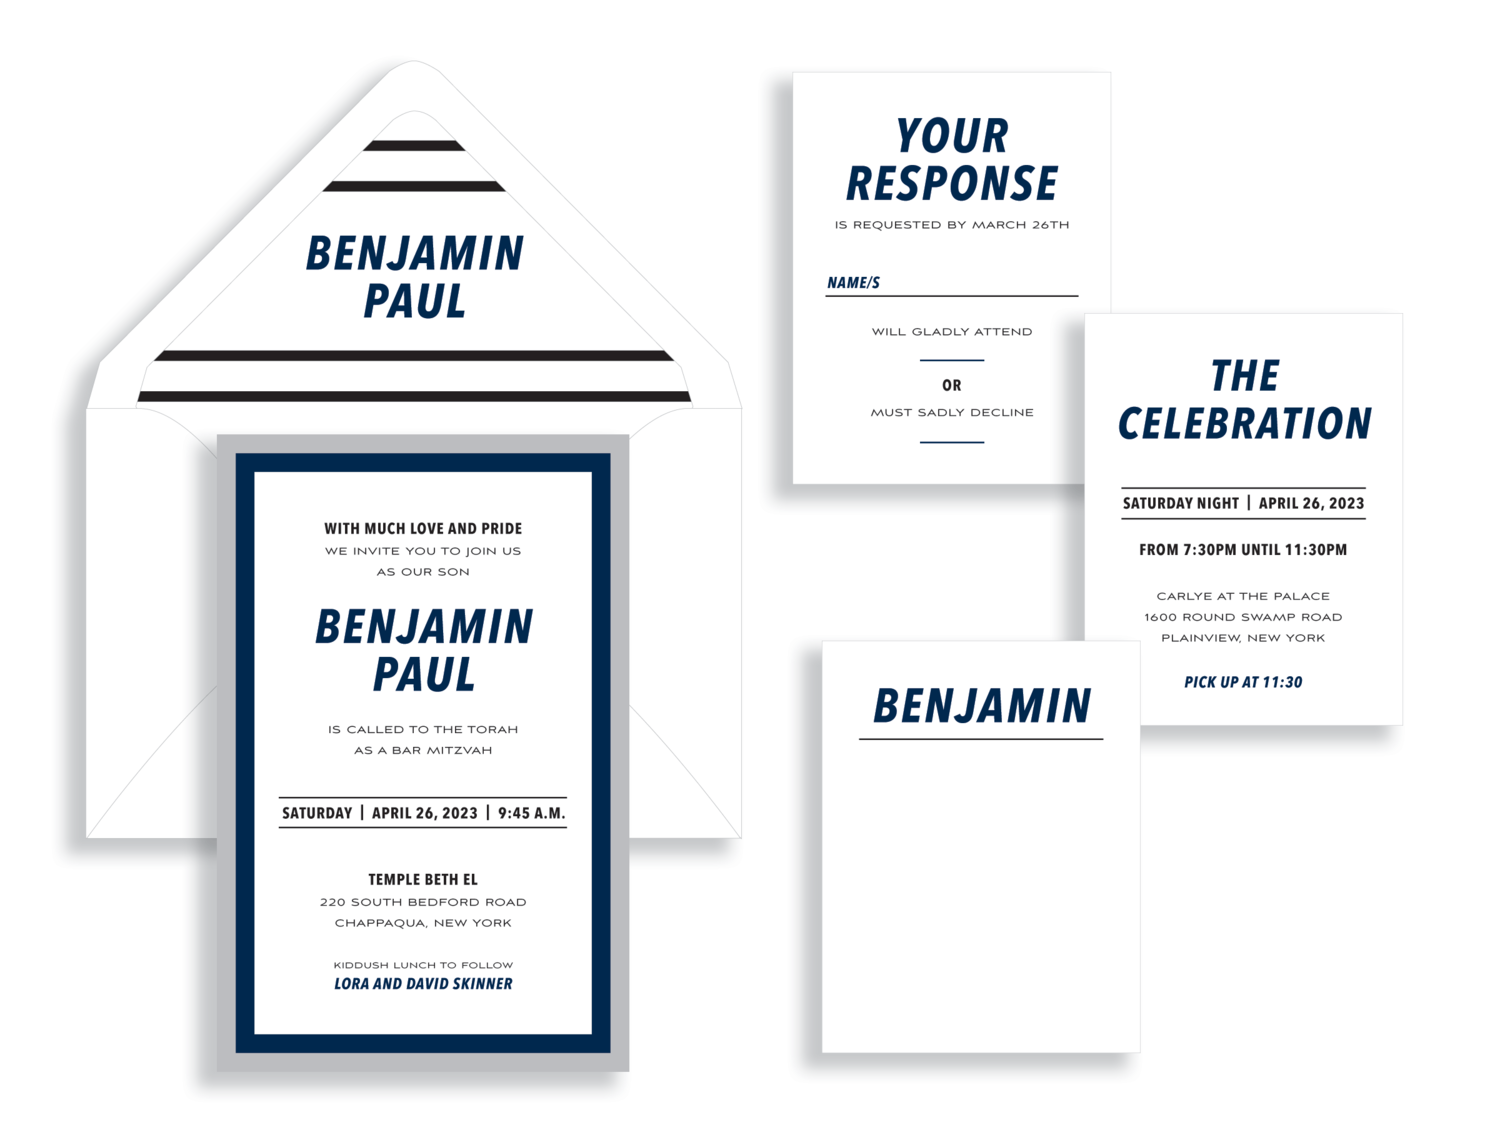 Benjamin bar mitzvah invitation available in Fairfax, VA from Staccato